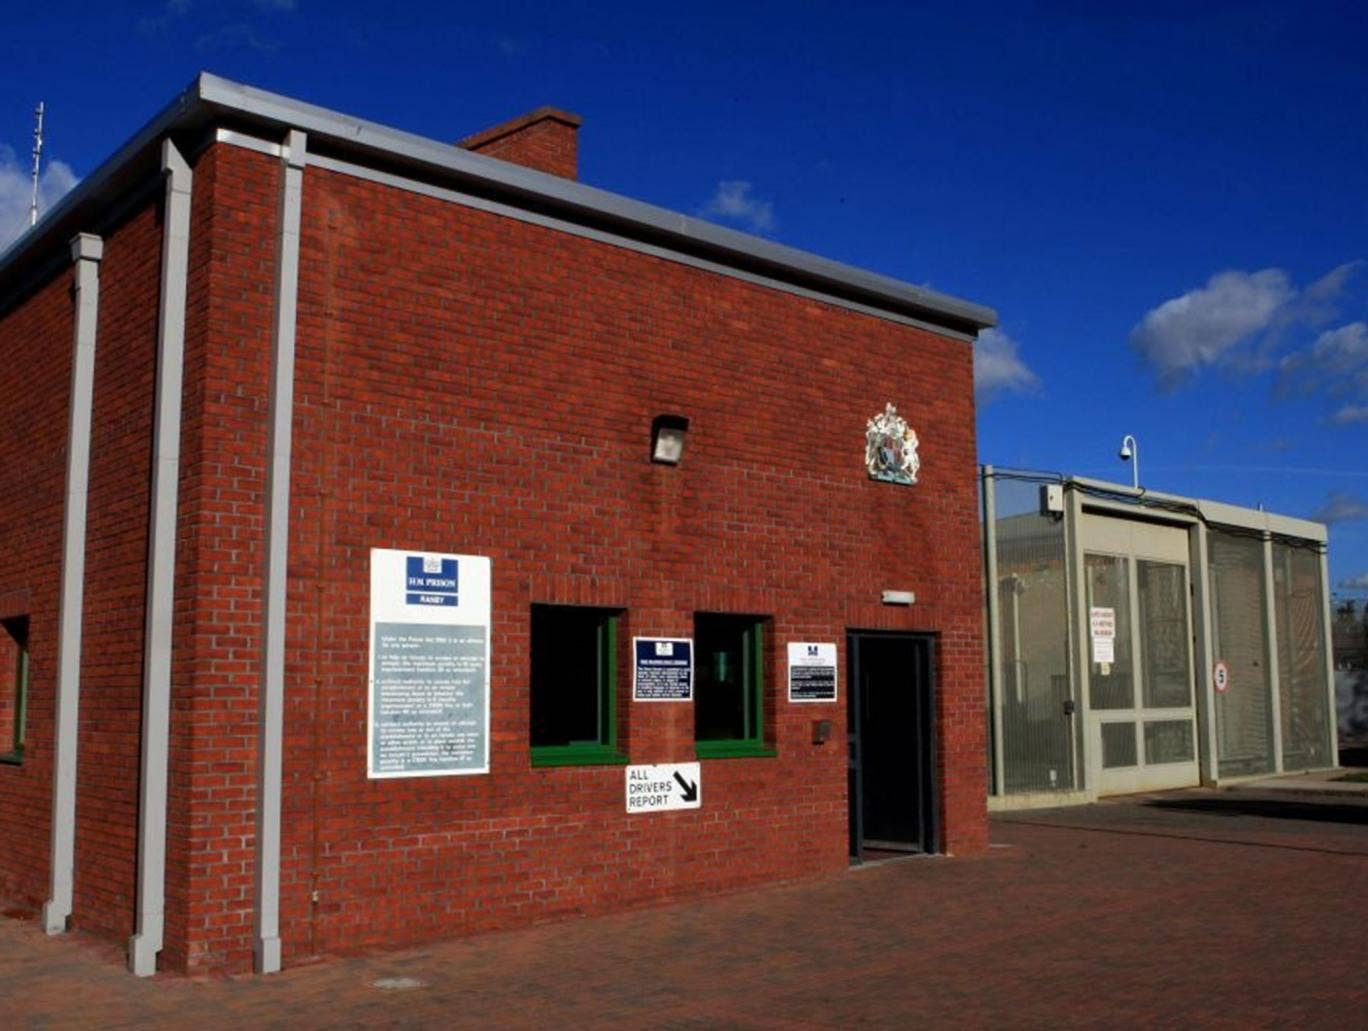 Chief Inspector of Prisons Nick Hardwick said HMP Ranby was 'in crisis' after the publication of a report on Thursday which described the prison as unsafe with high levels of violence